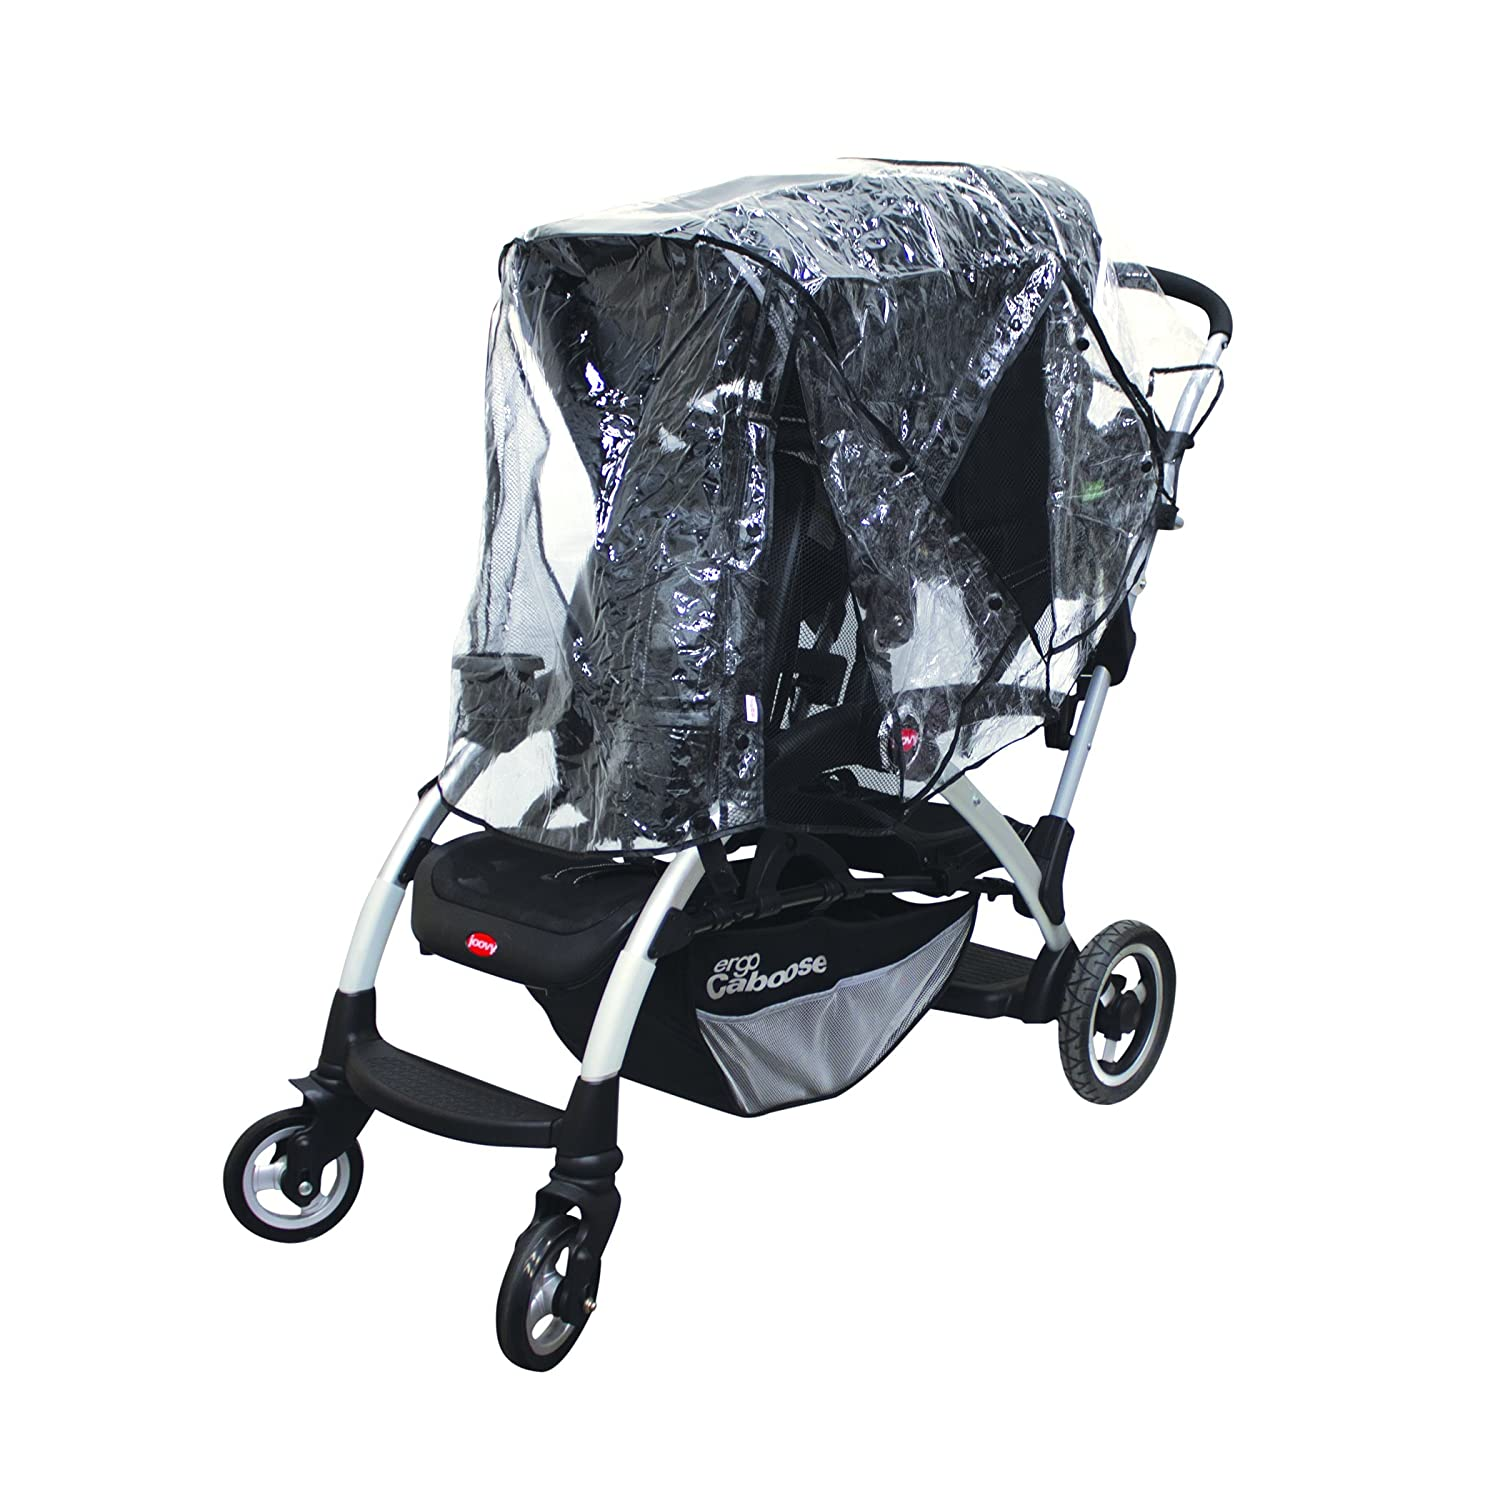 Nuby Deluxe Tandem Stroller Weather Shield, Clear N120017P